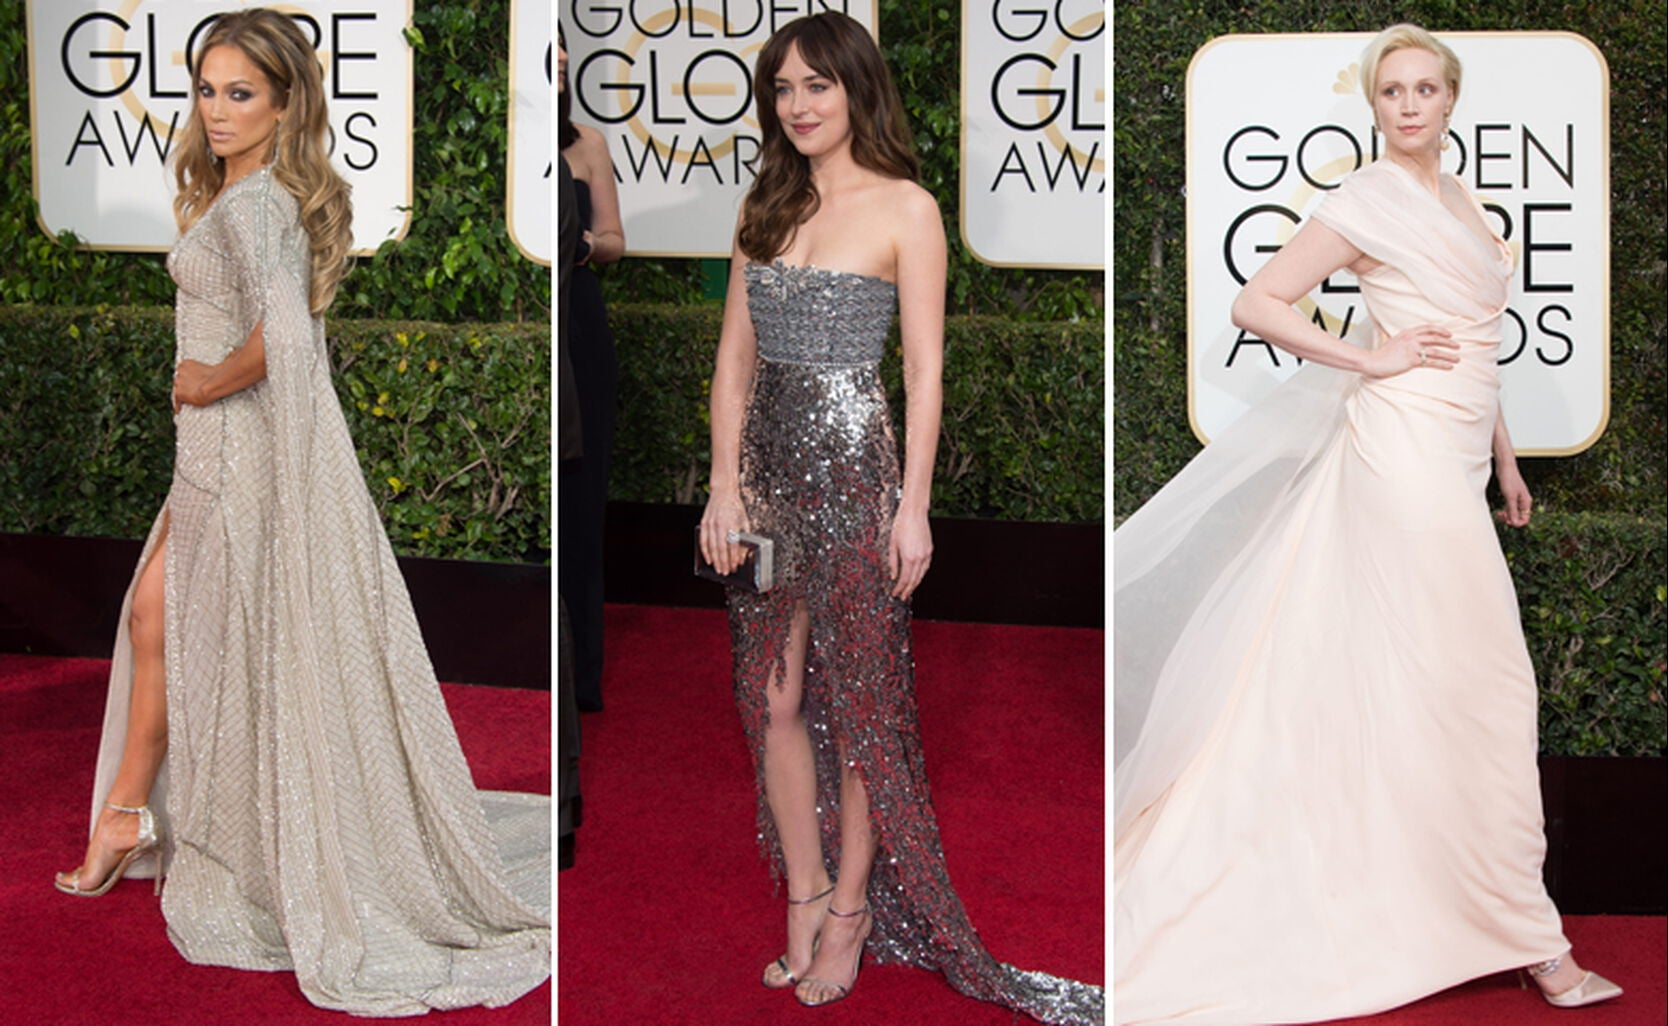 Jennifer Lopez, Dakota Johnson and Gwendoline Christie